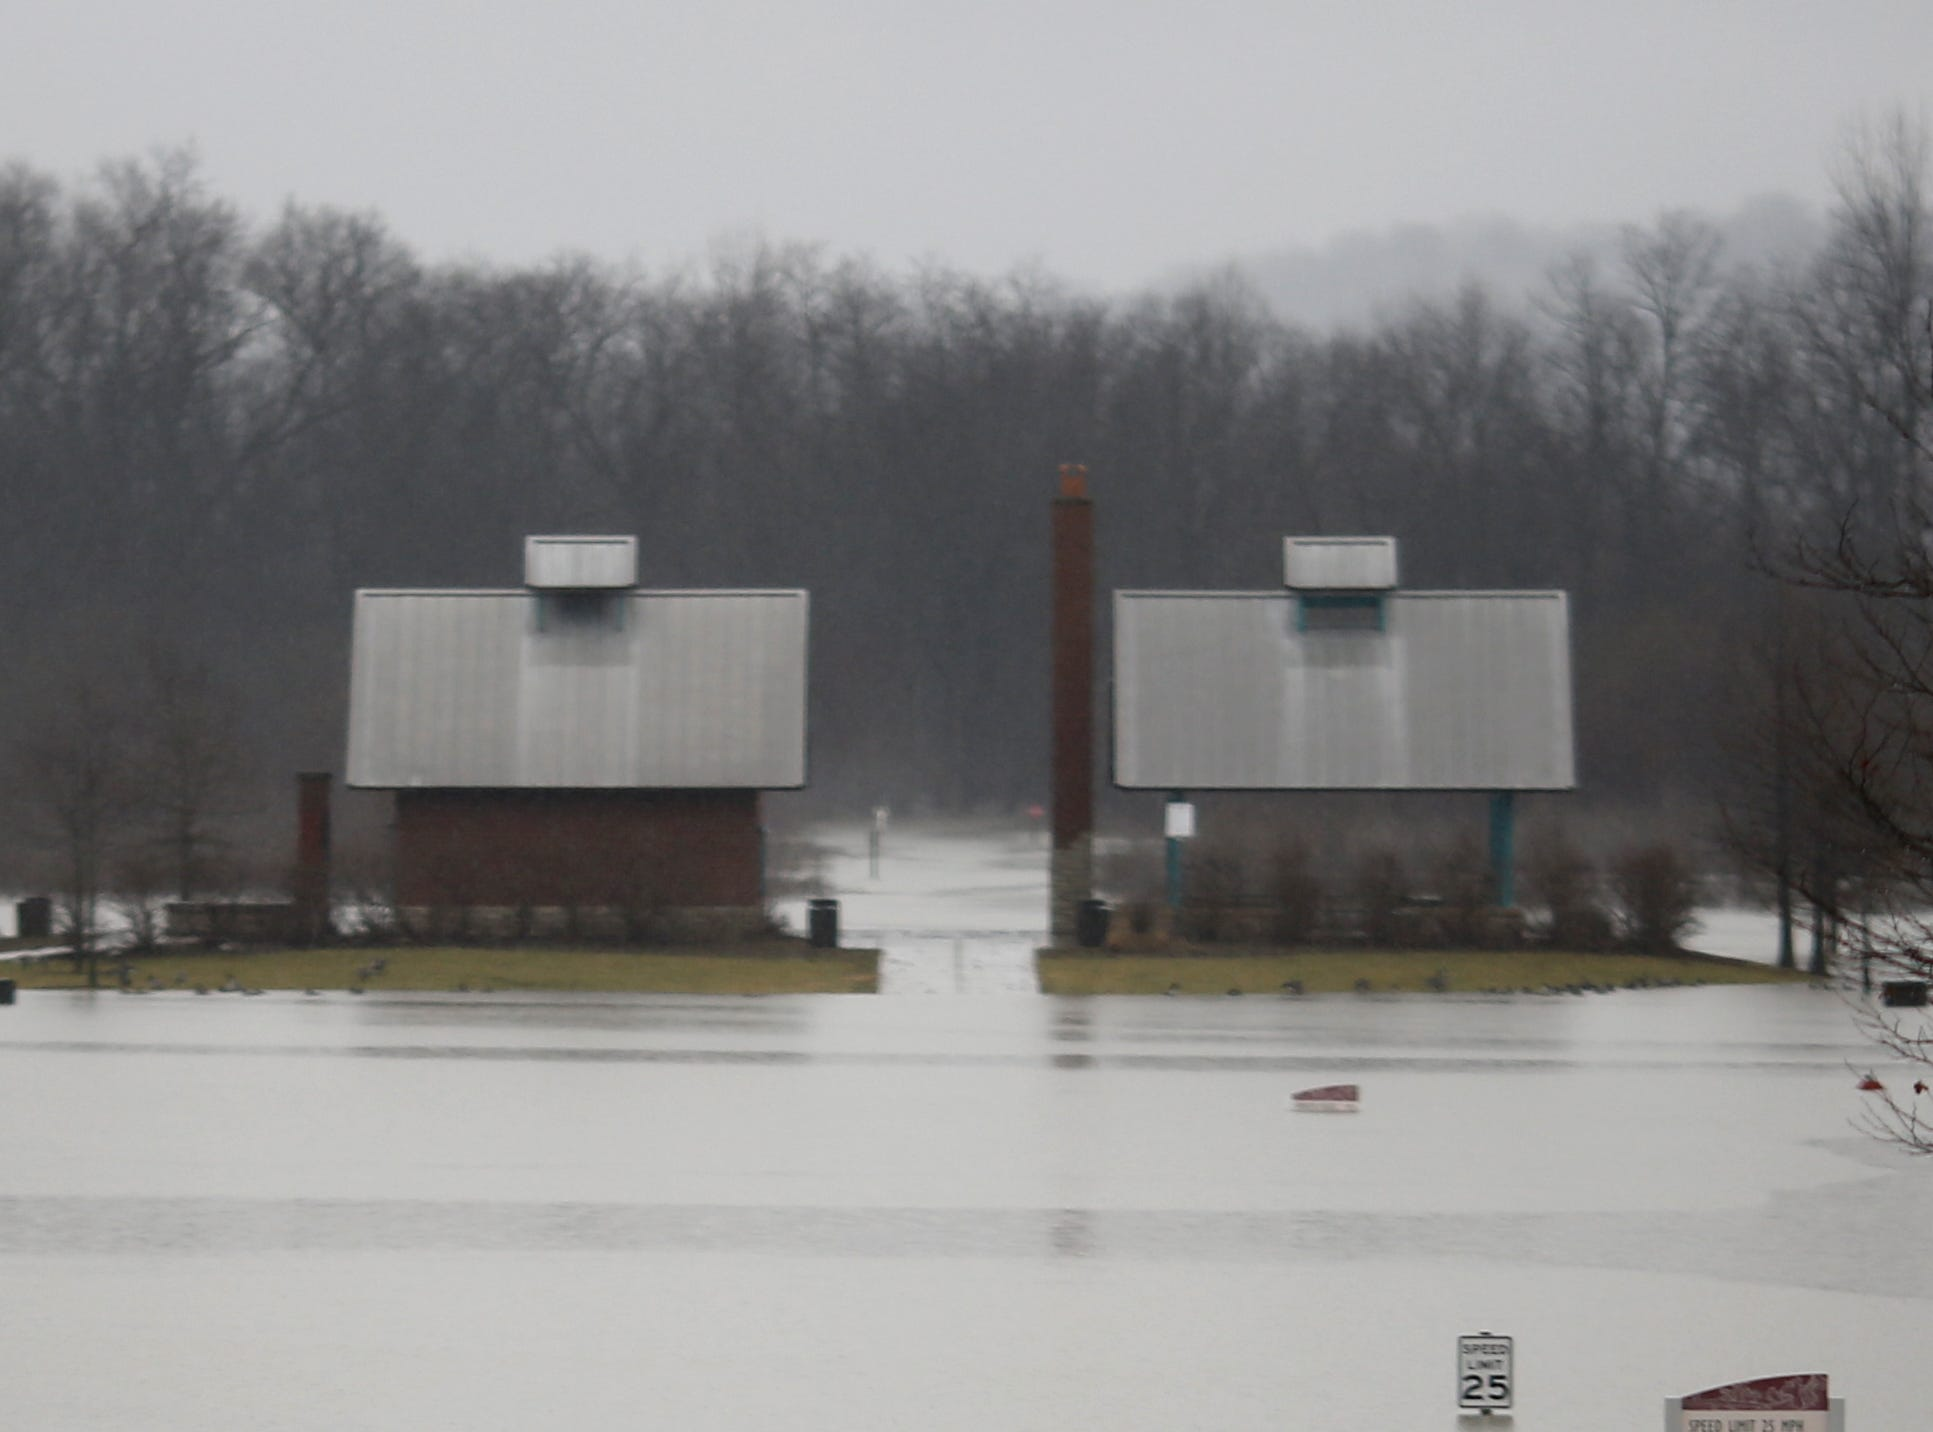 Flood waters cover the parking lots and soccer fields at Otto Armleder Memorial Park & Recreation Complex in the Linwood neighborhood of Cincinnati on Monday, Feb. 11, 2019.